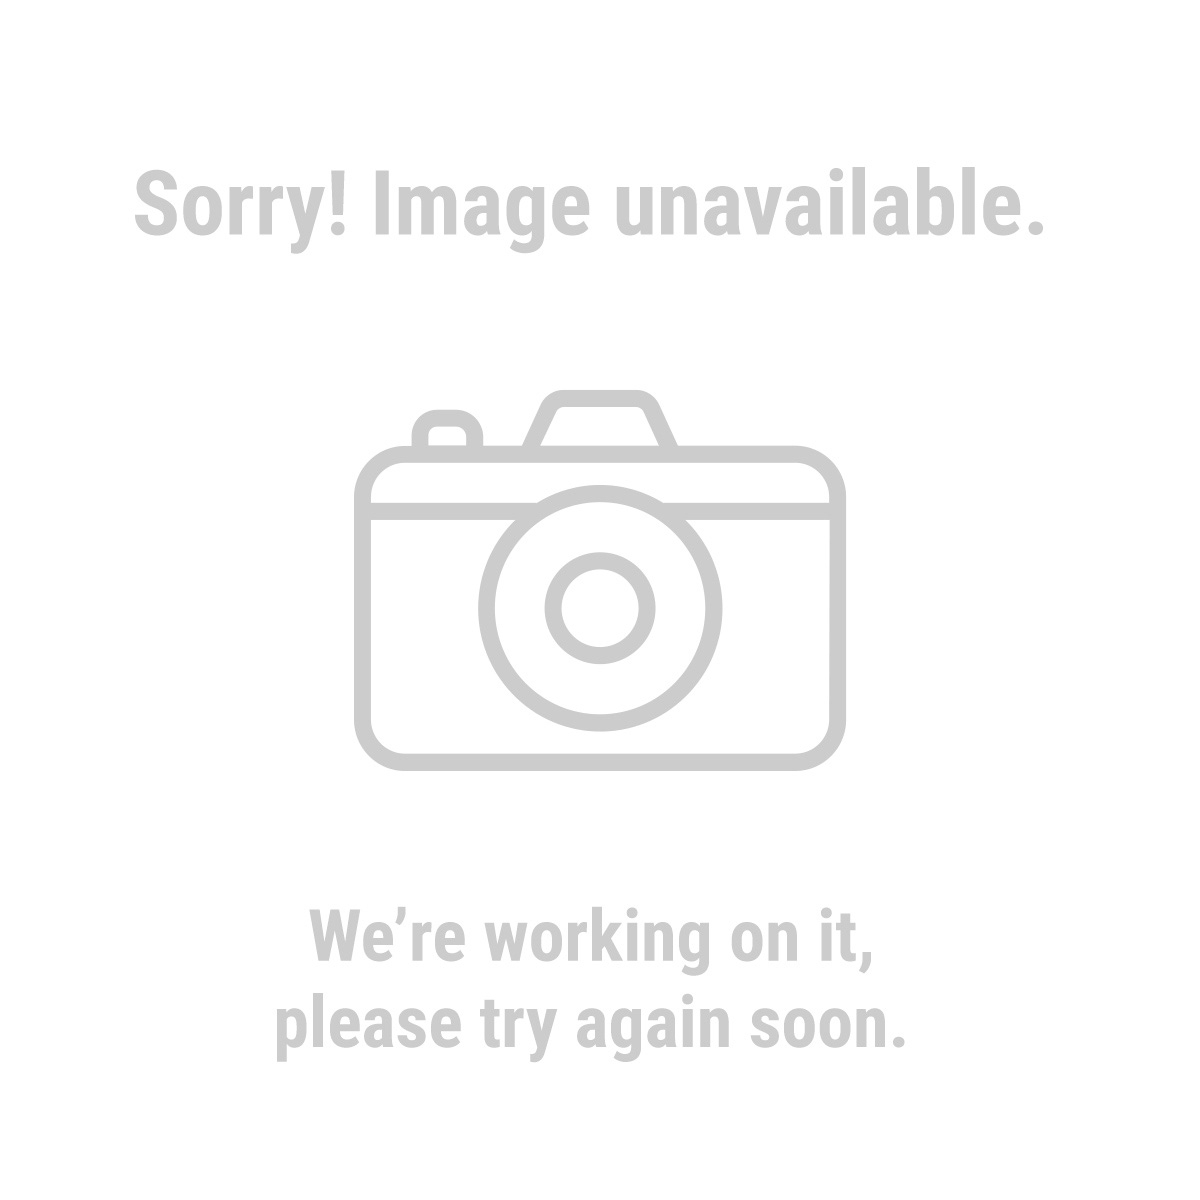 Pittsburgh® 62569 6 in. Digital Caliper with SAE and Metric Fractional Readings